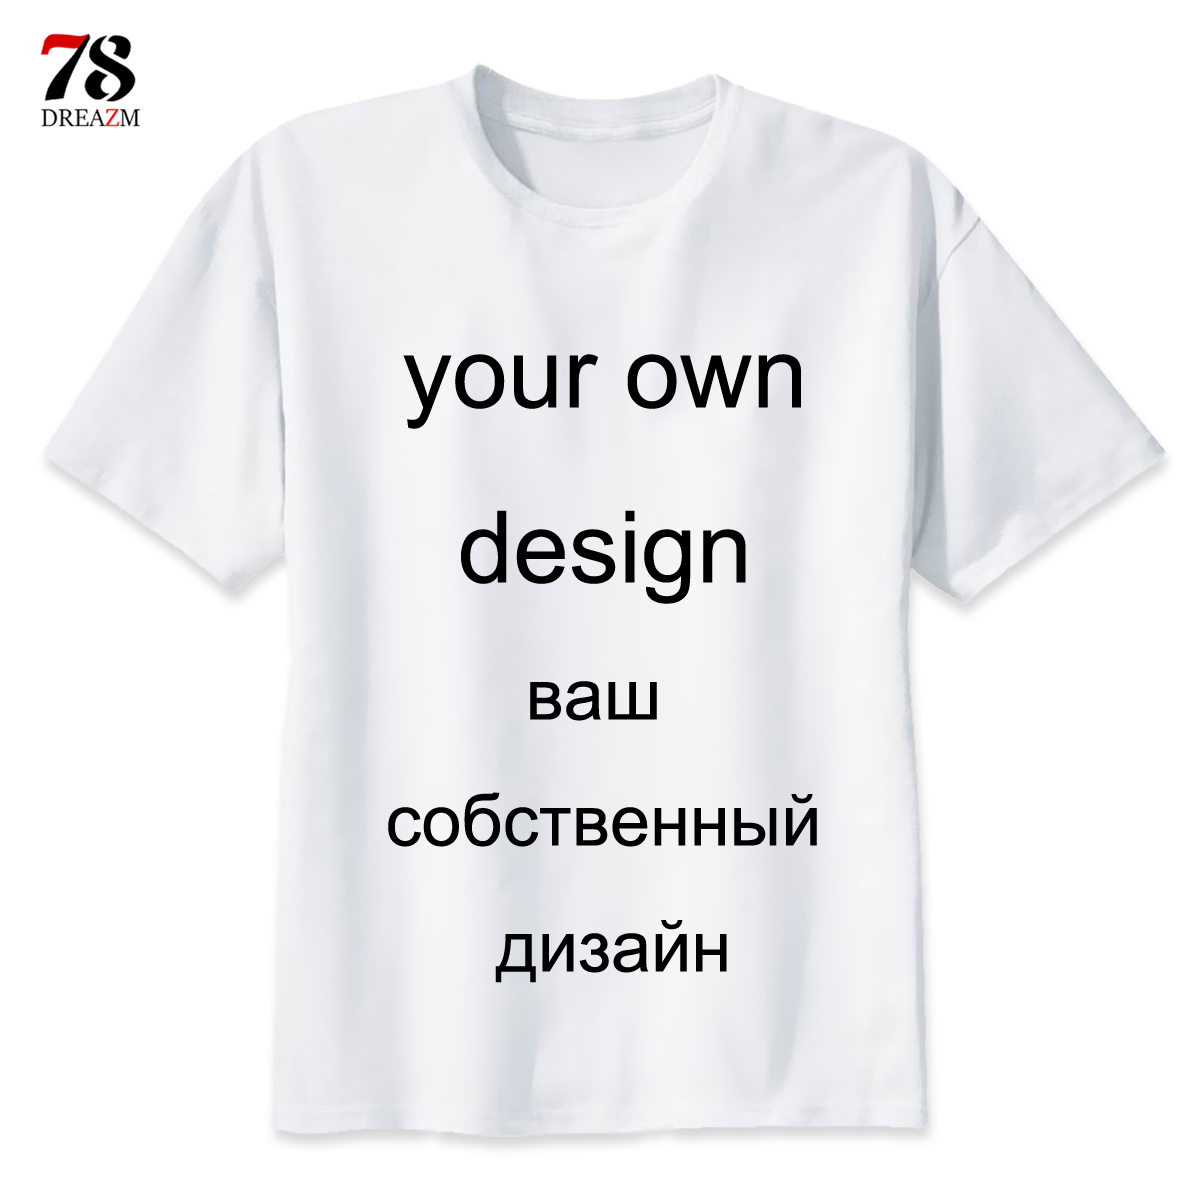 0f358f79 No matter what kinds of interesting t shirt designs you are finding now, we  can provide you that. For boys, girls, men, women, we have them all.